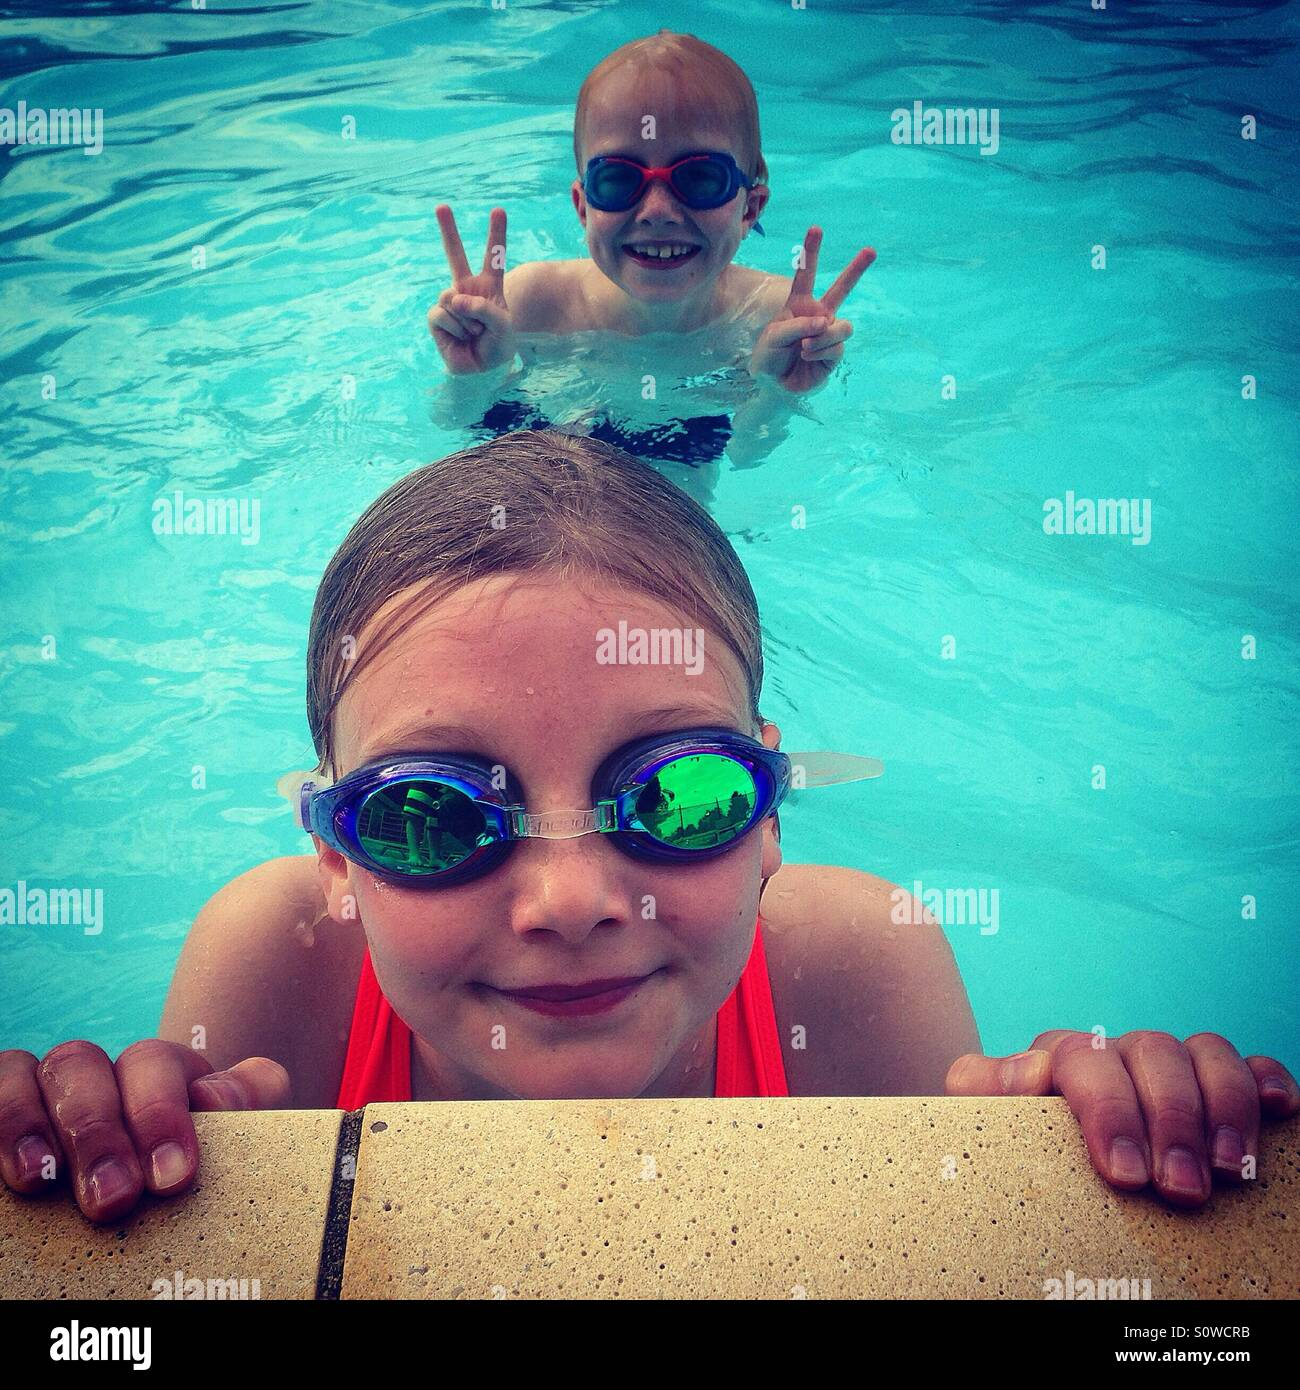 Kids in a Swimming Pool - Stock Image